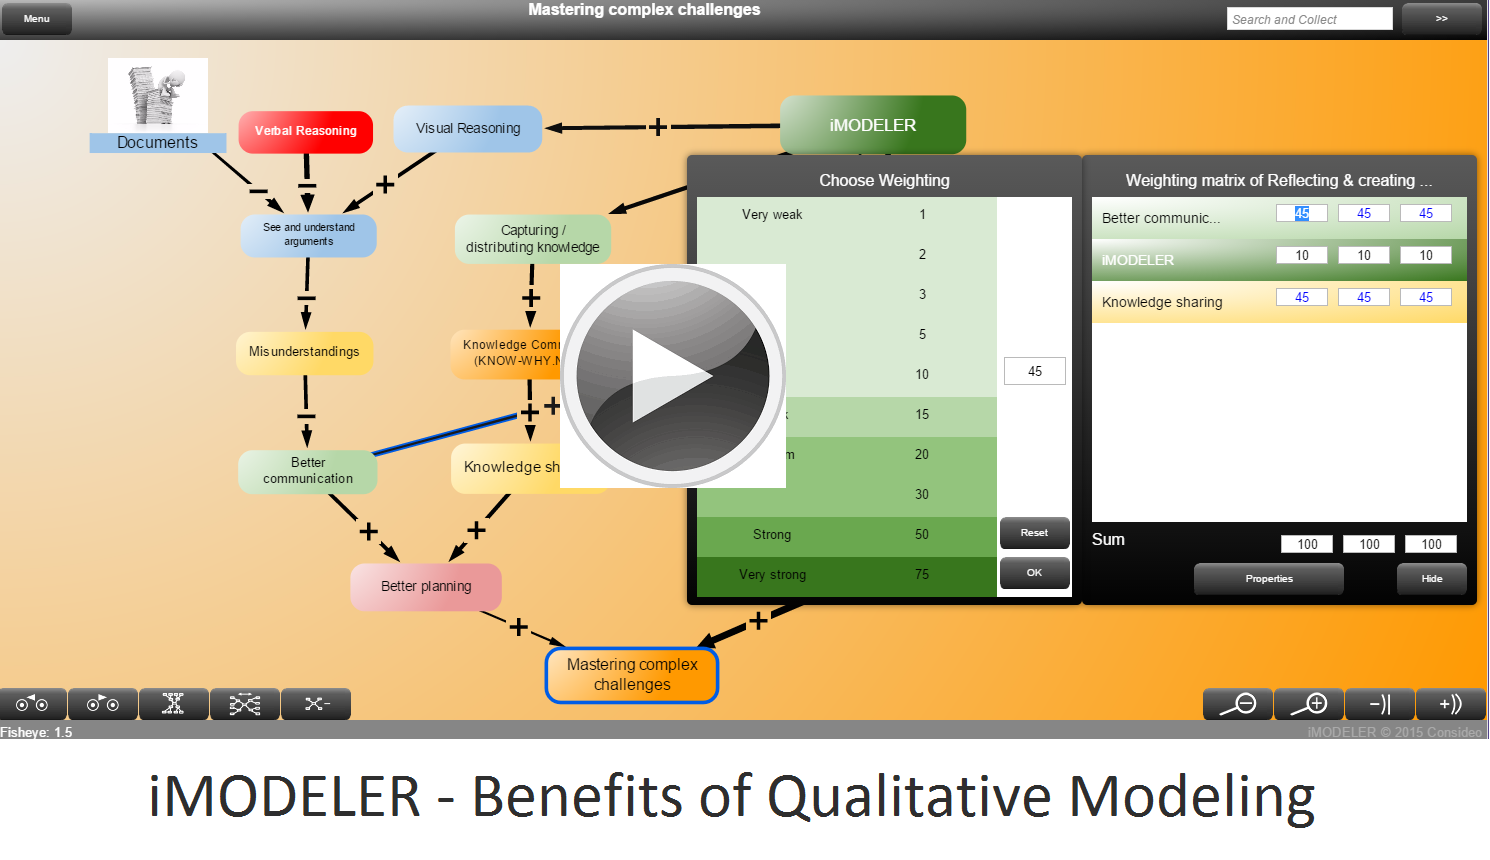 iMODELER - Benefits of Qualitative Modeling